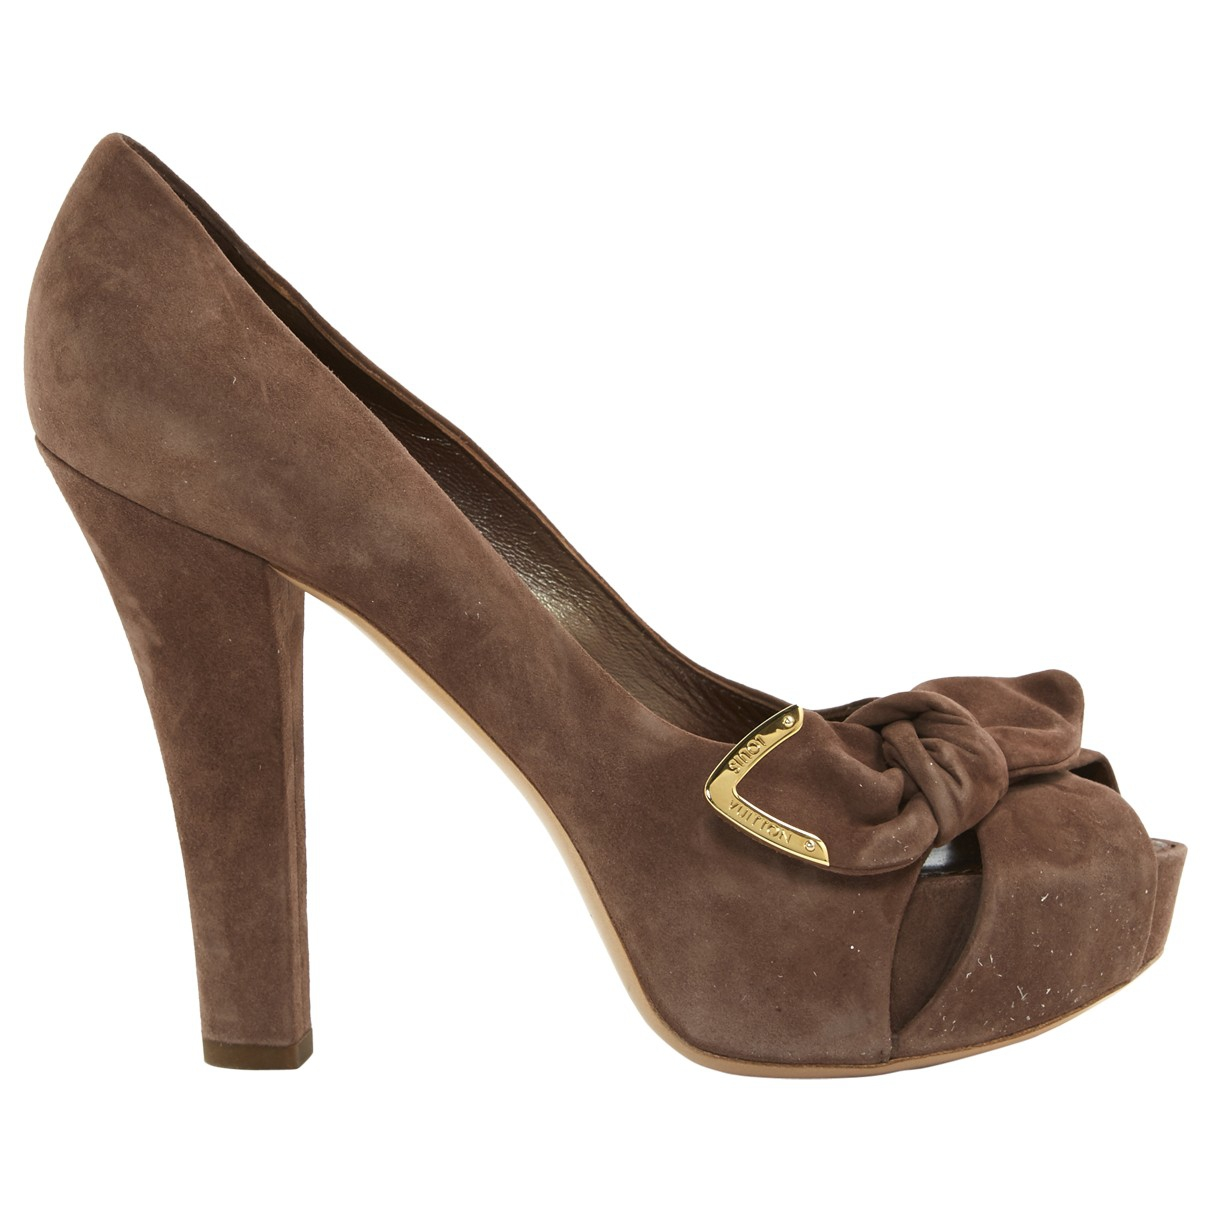 Louis Vuitton \N Brown Suede Heels for Women 37 EU